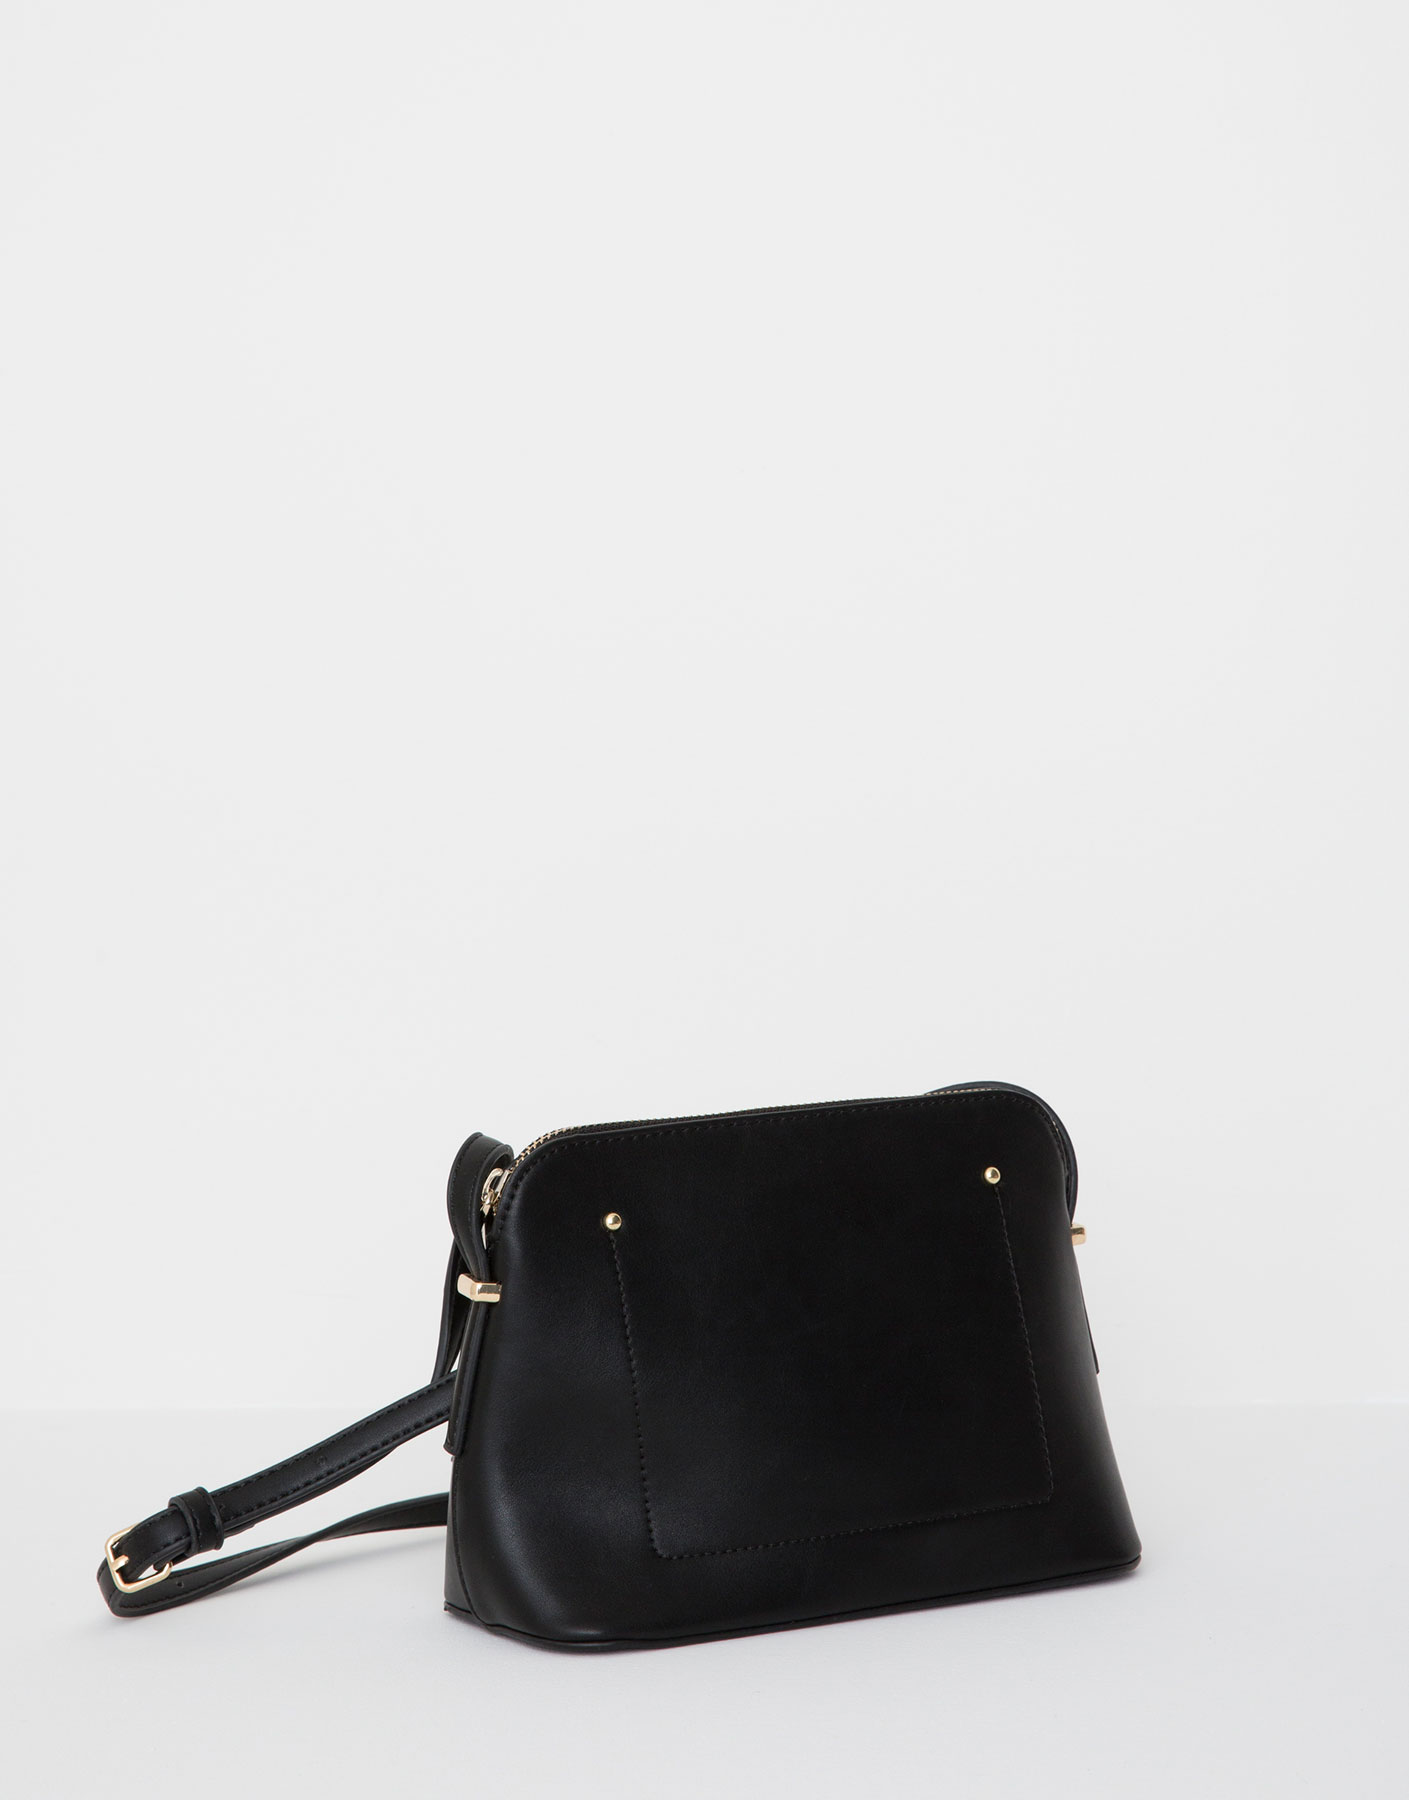 Square-shaped rigid handbag